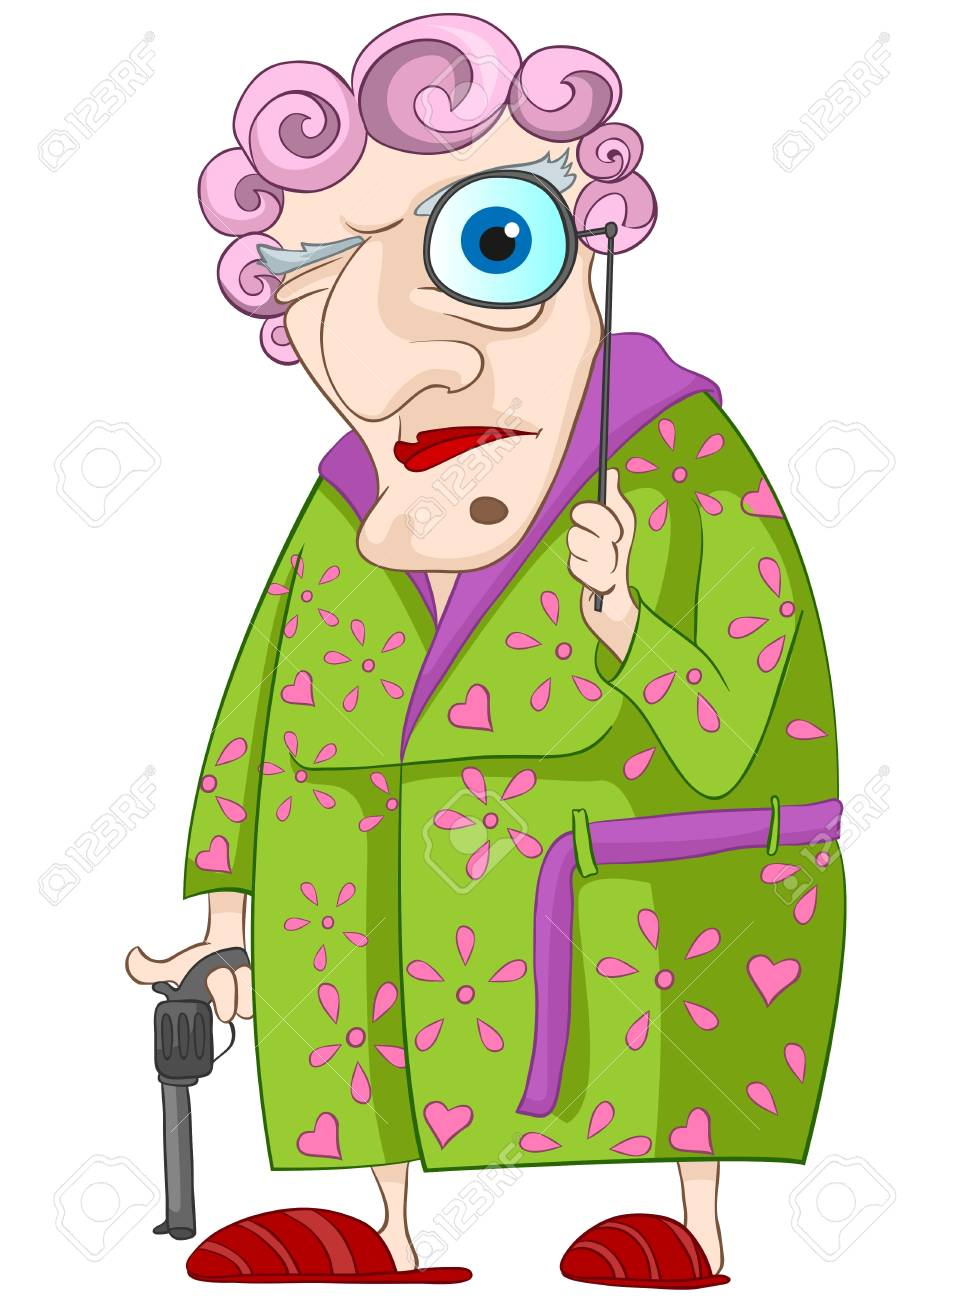 Old Woman Isolated on White Background. Stock Vector - 20633729